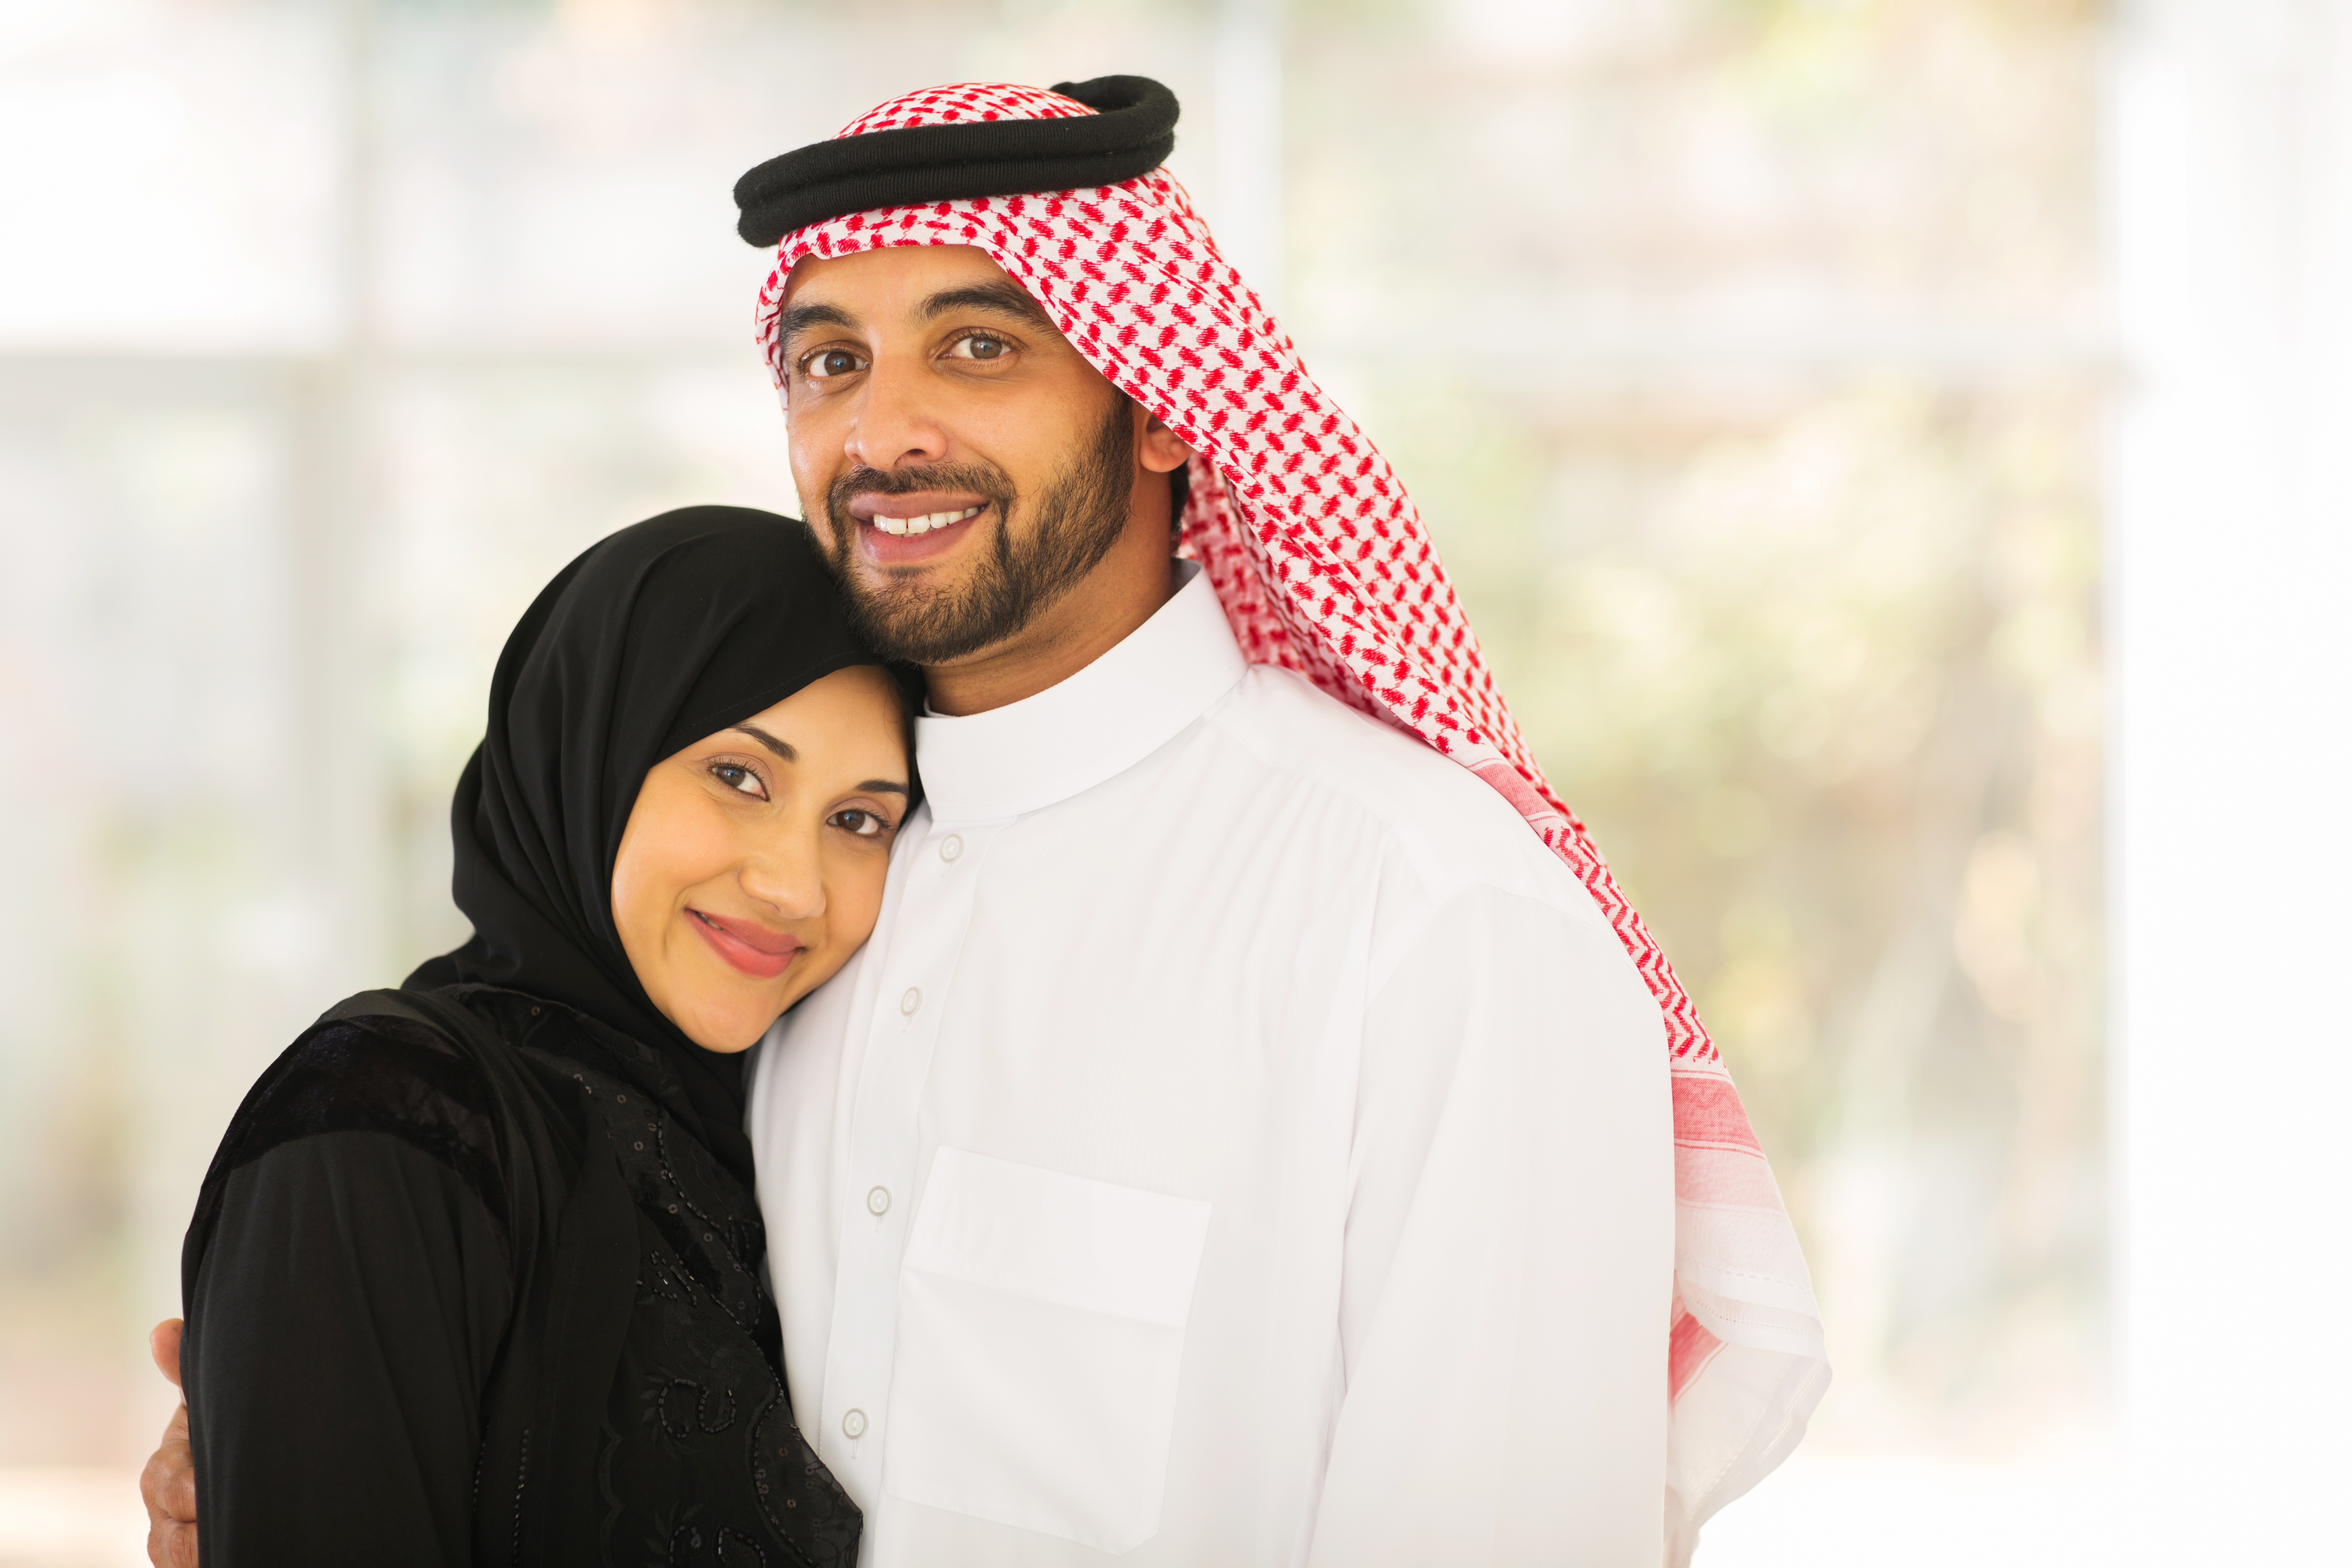 muslim single men in west medford Muslim women | muslim men | join free français deutsch nederlands italiano  abbottābād, north-west frontier, pakistan seeking: 19 - 40 last login: 0 min ago nadya (20)  medford, massachusetts, united states seeking: 33 - 45 last login: 49 mins ago asmaa (25) الأميرة fès.